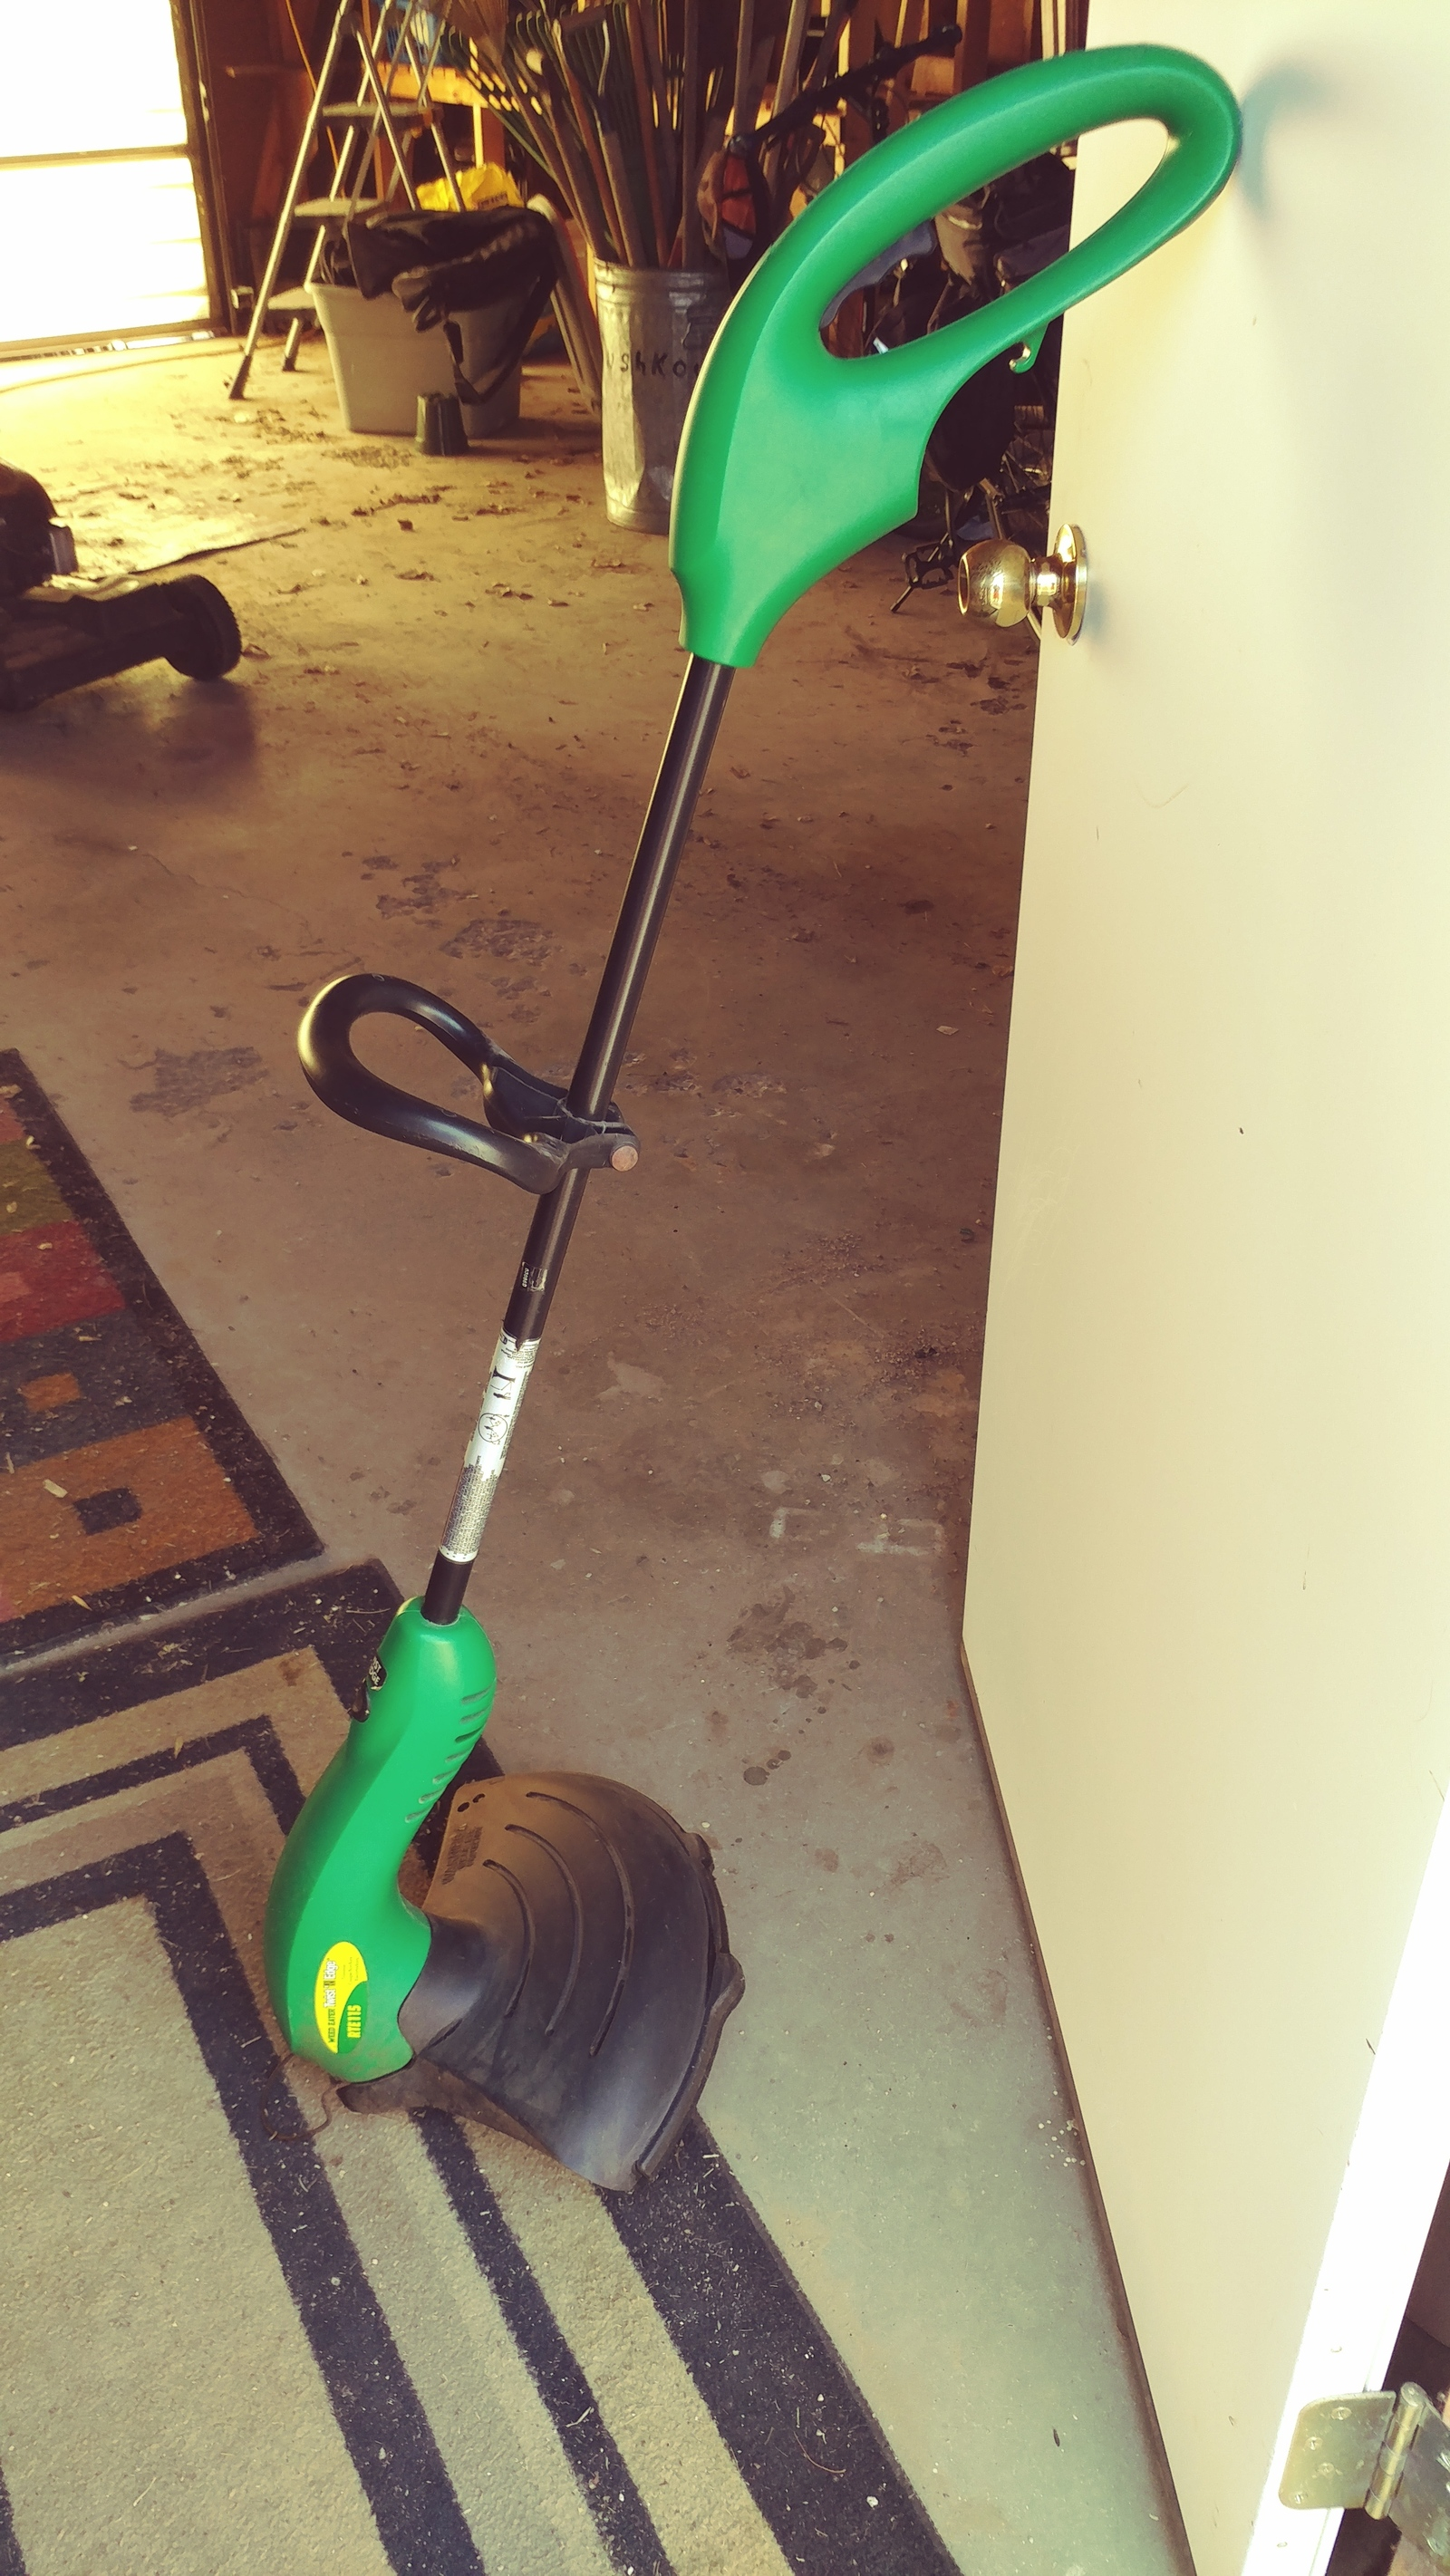 Electric Grass Trimmer  Weed Eater Twist N Edge model RTE 115  Works but  has no | Jamestown, ND